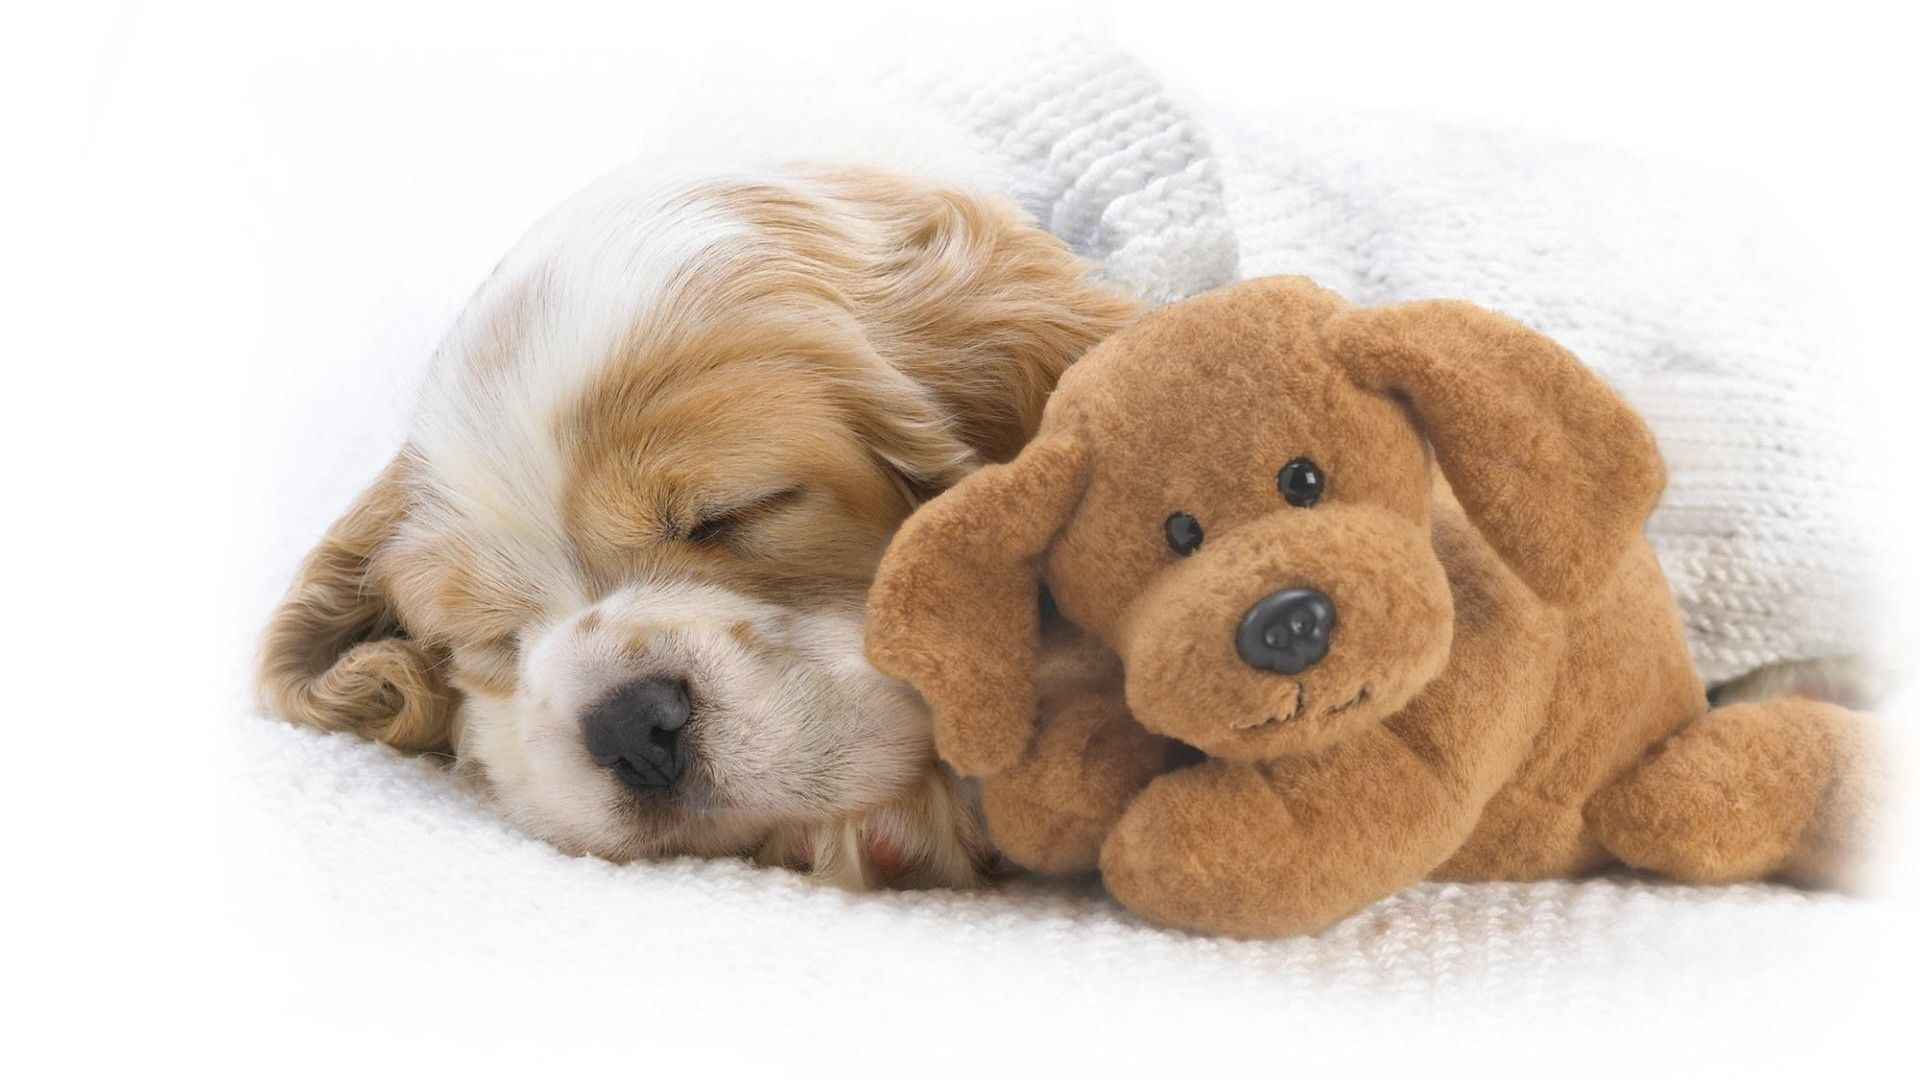 Puppy sleeping cute toy wallpaper x need iphone s plus